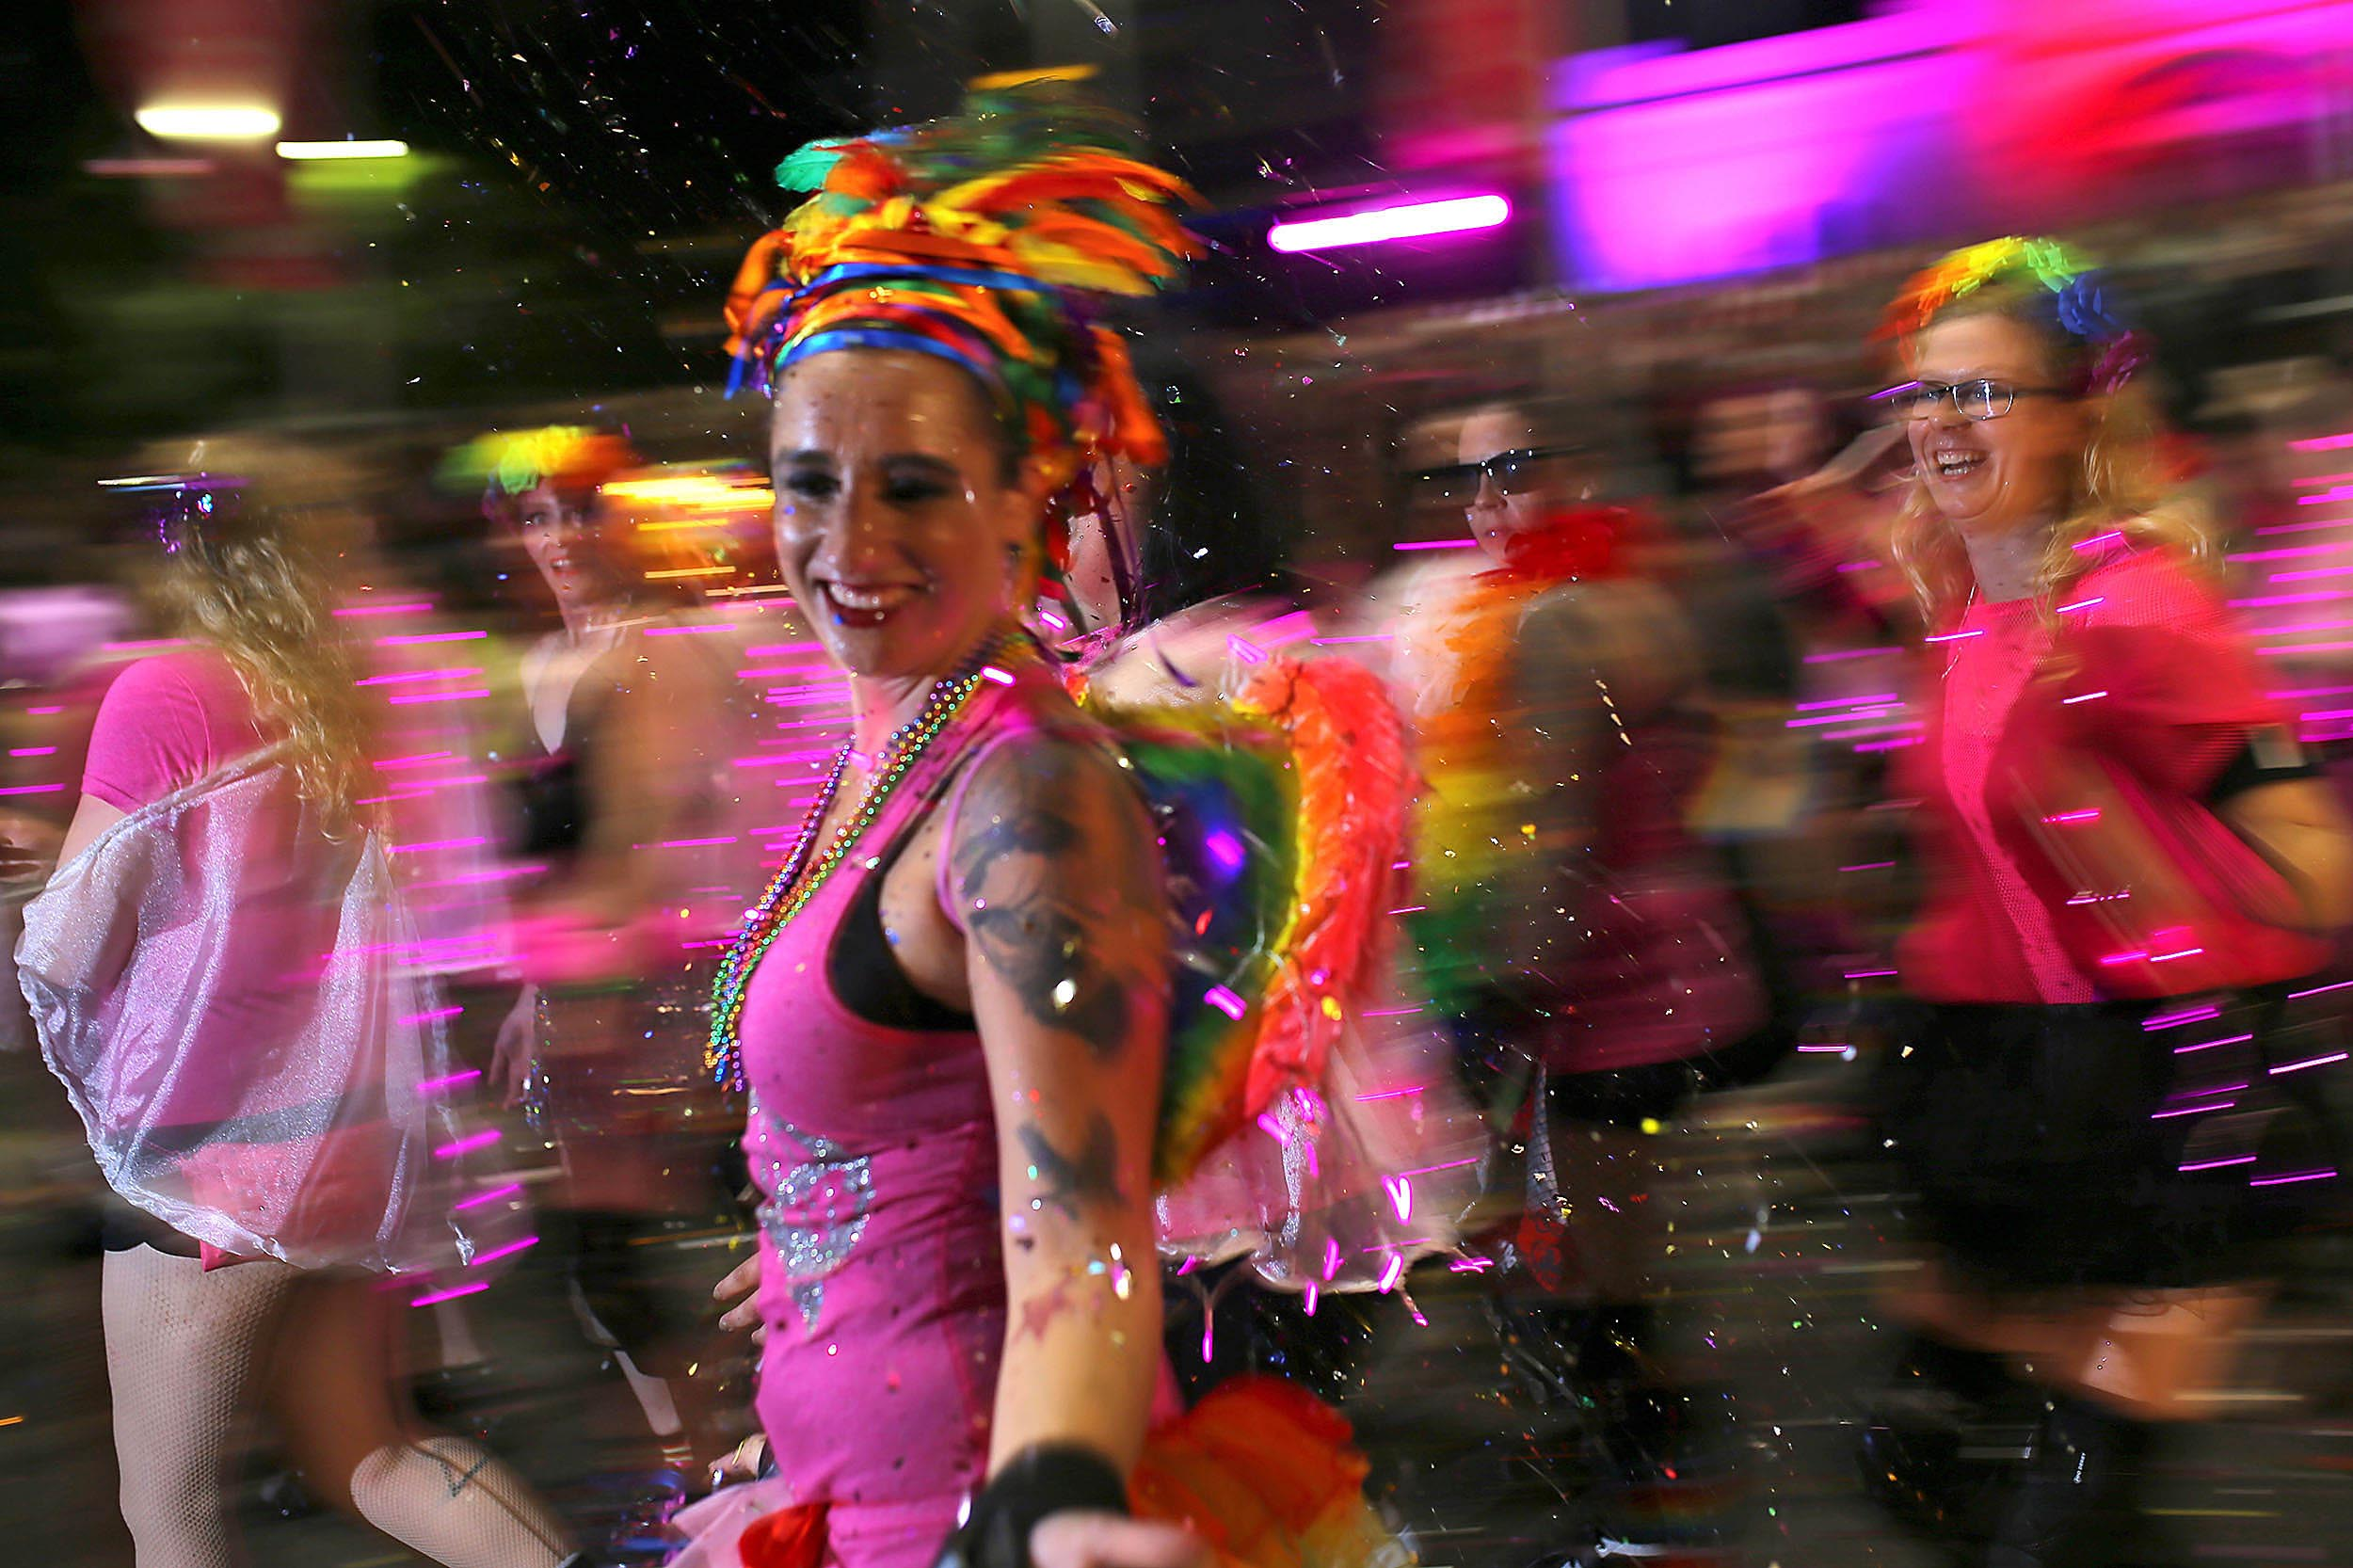 Participants march at the annual Sydney Gay and Lesbian Mardi Gras parade in central Sydney, Australia.